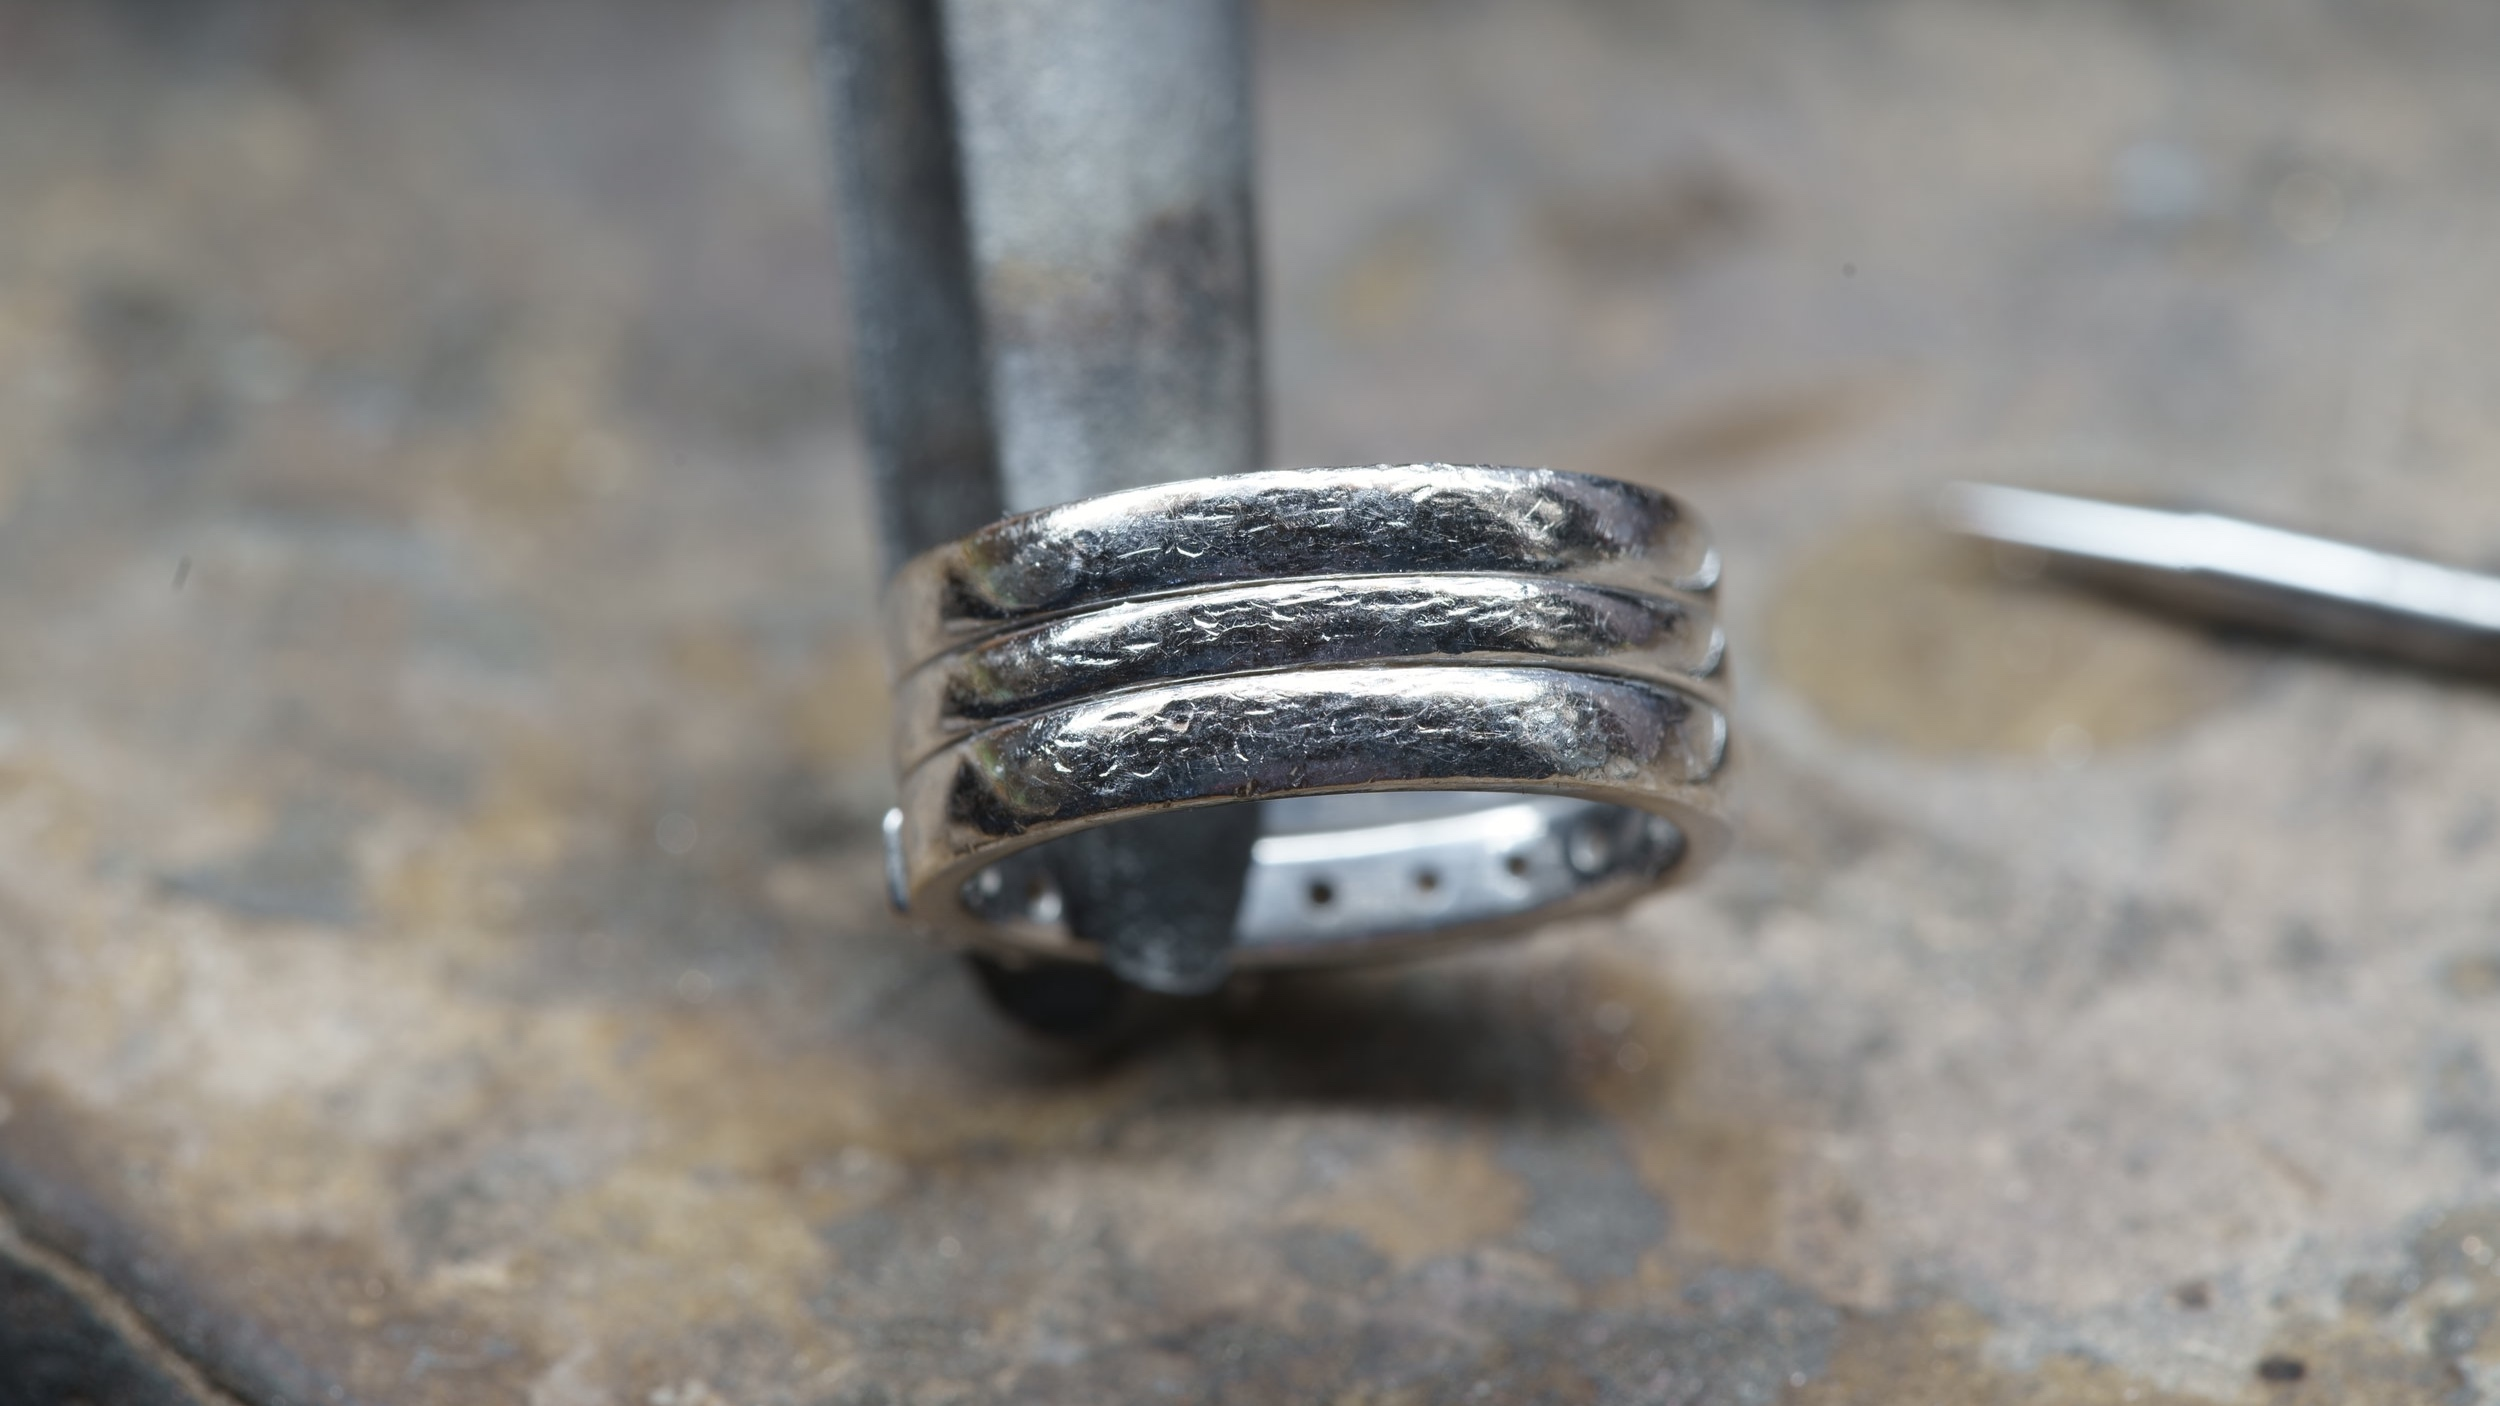 Marks on the rings after 1 year of wear.